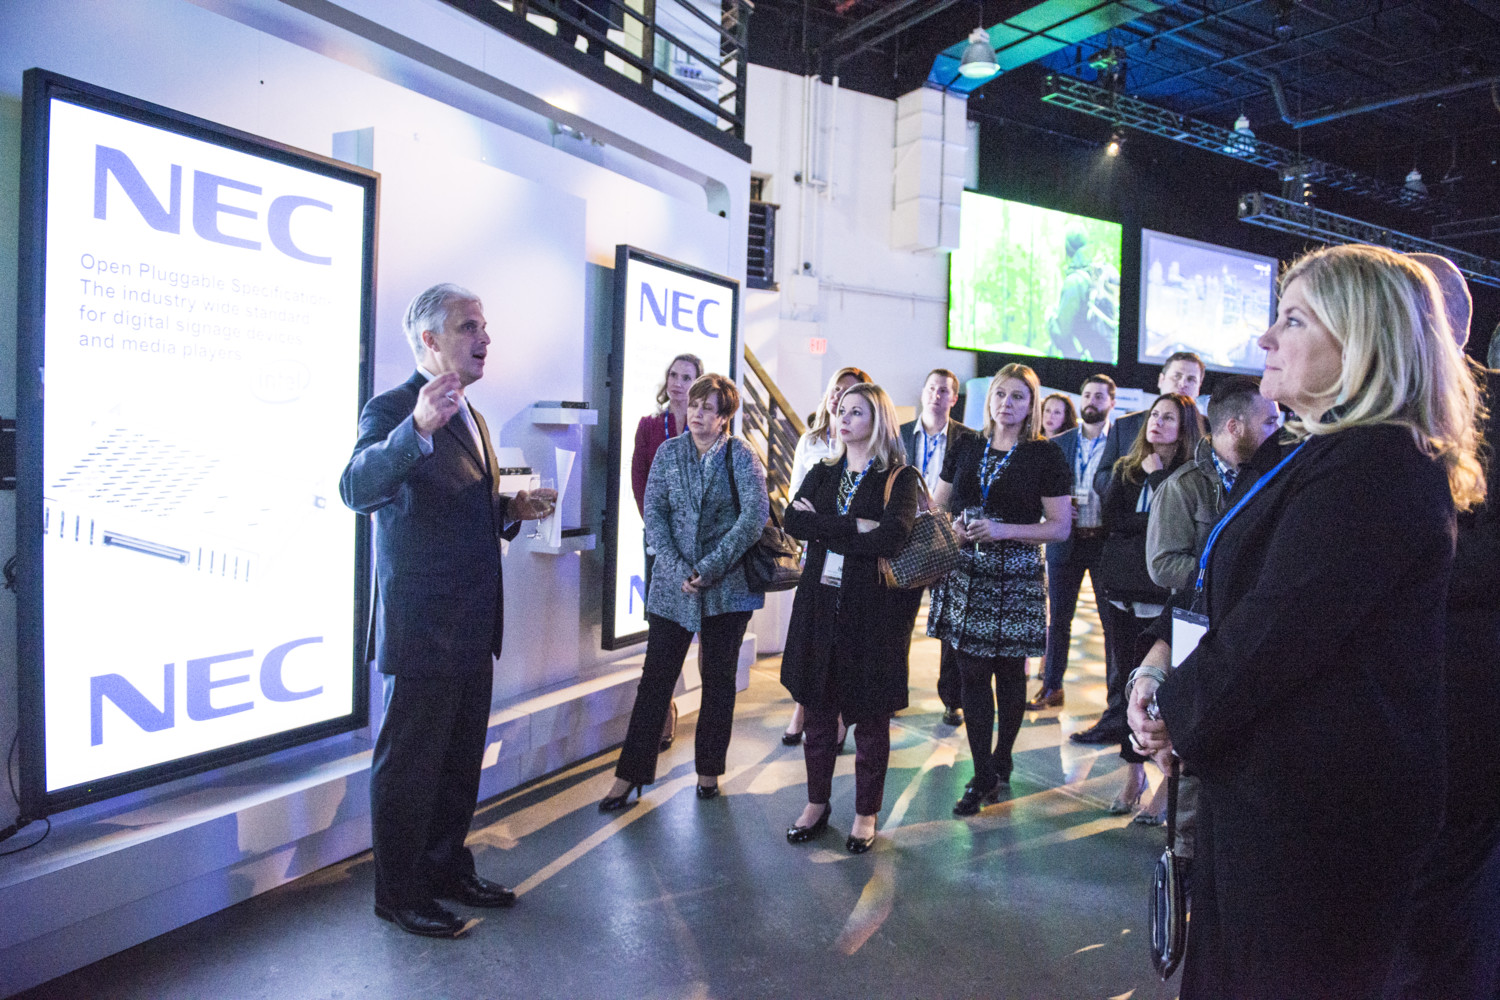 NEC Display Solutions 2015 Event - image 2